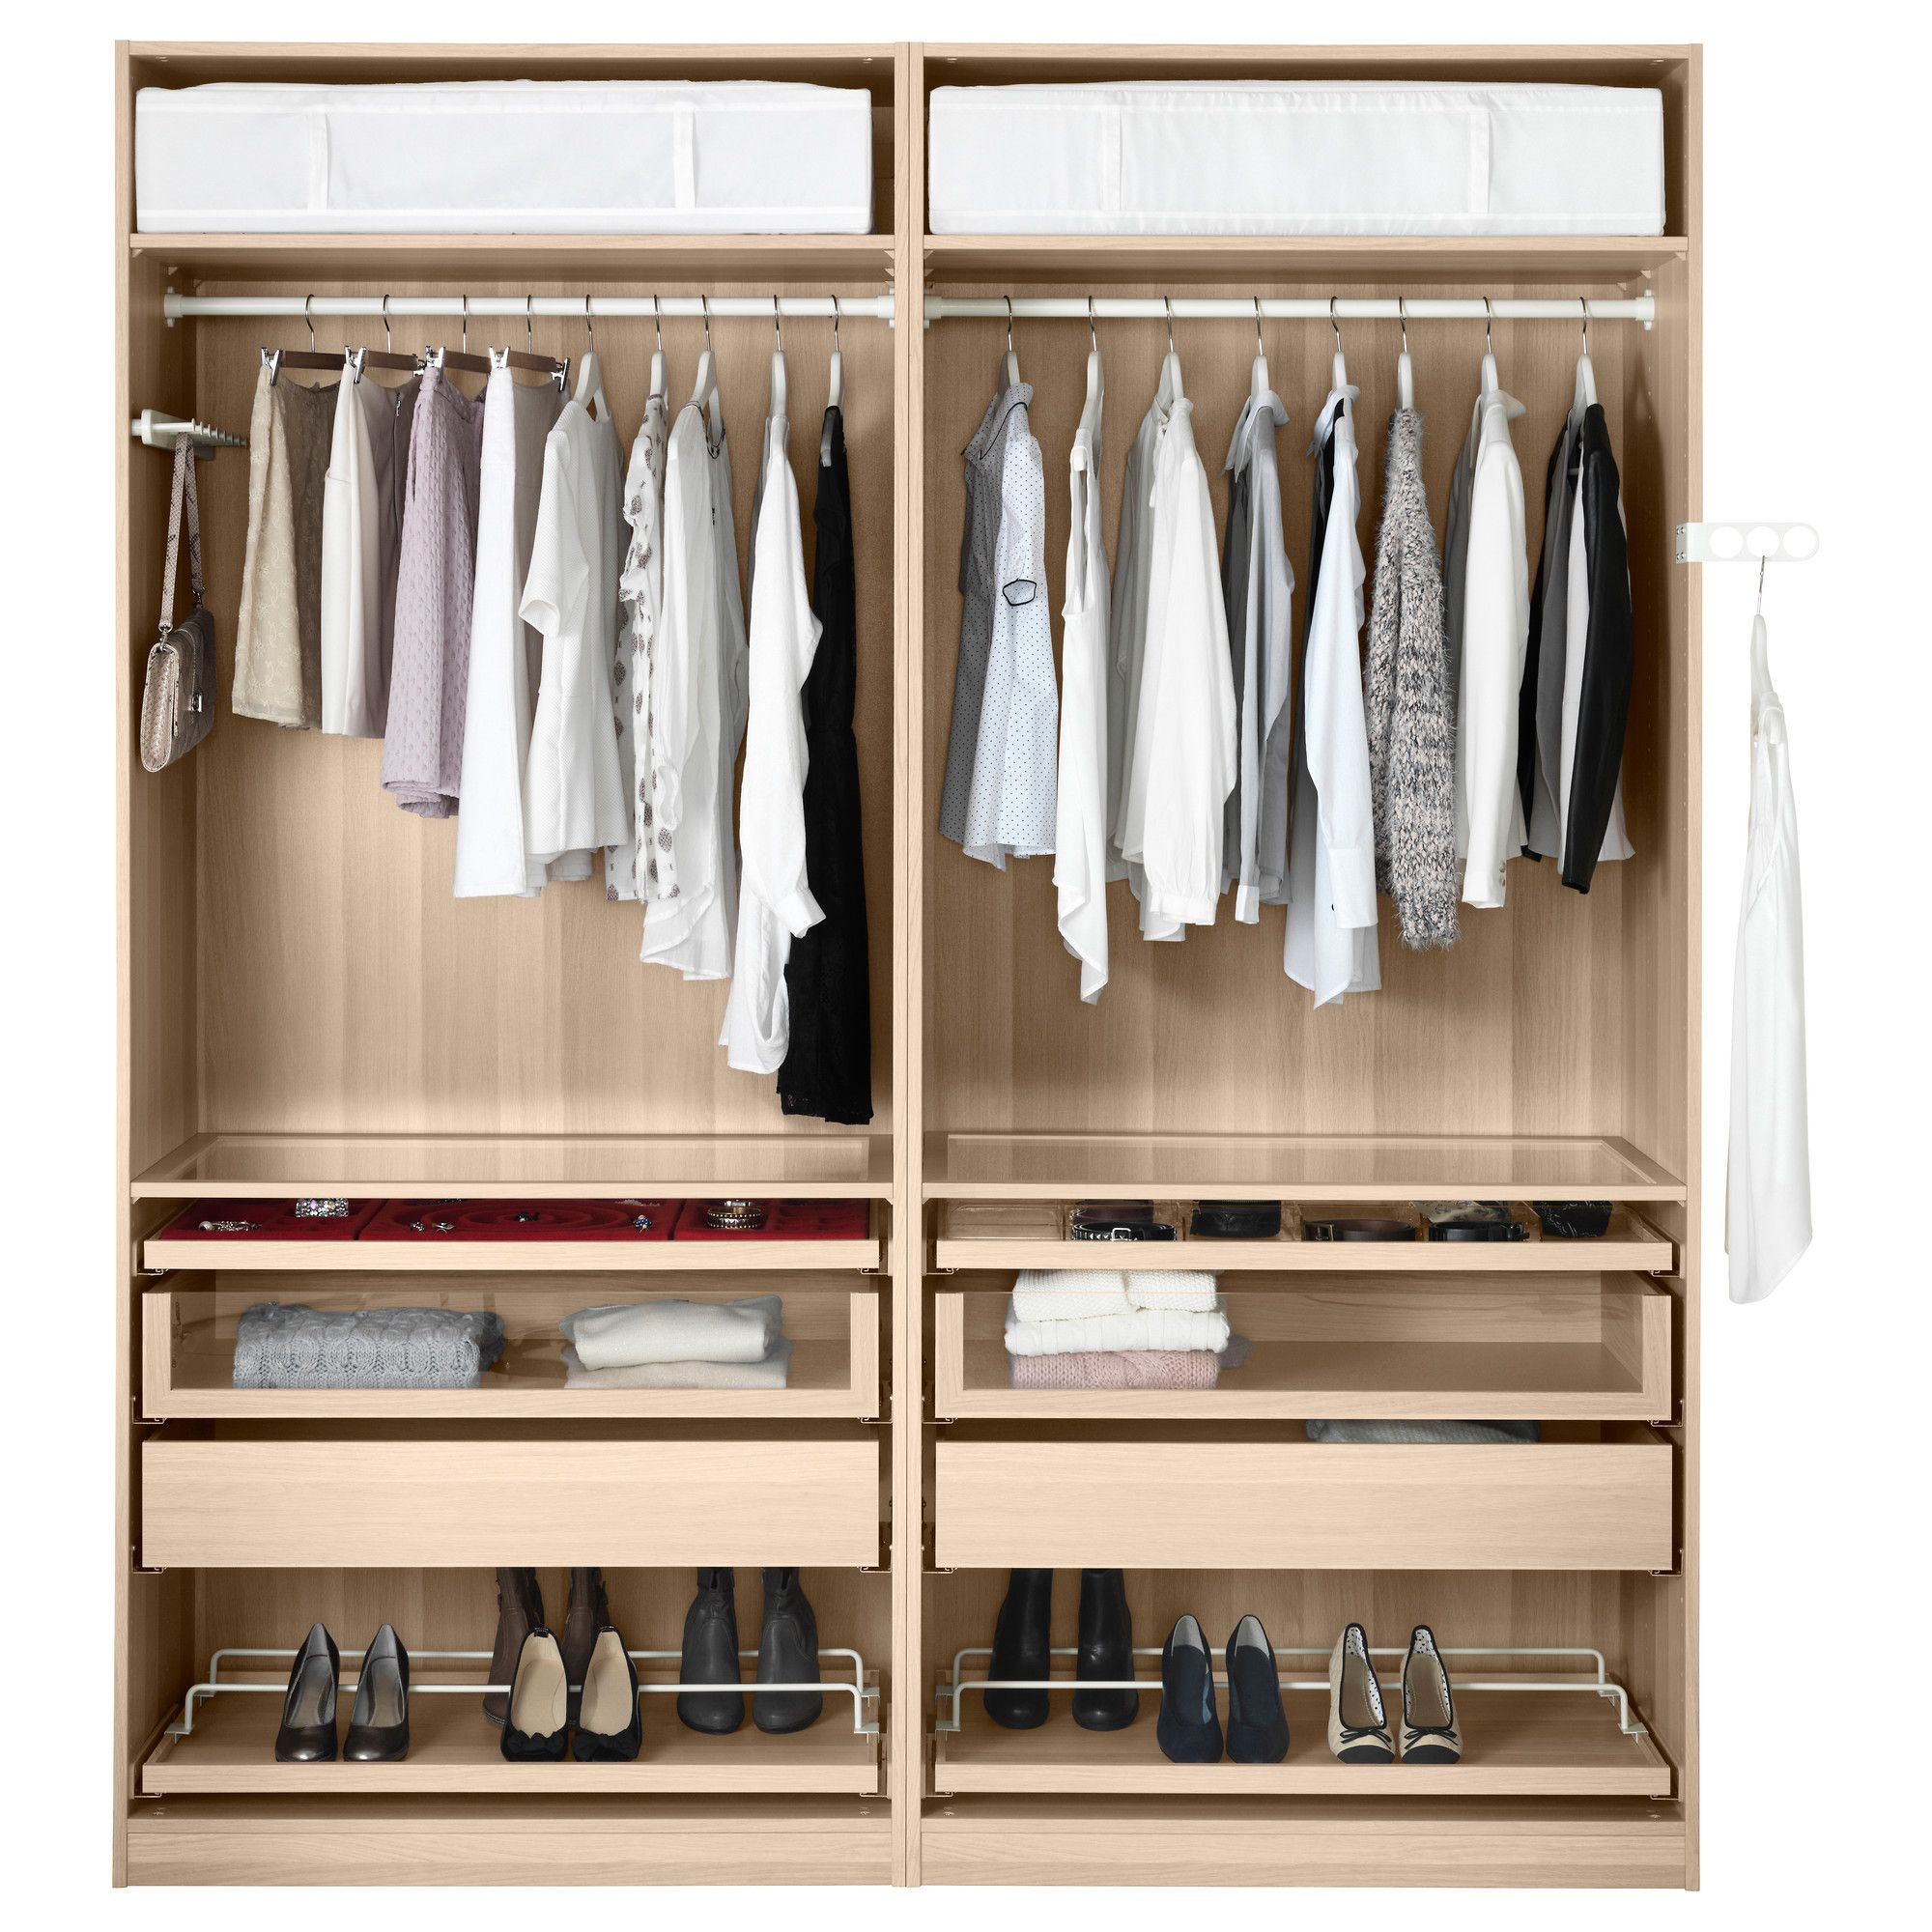 Ikea System Ikea Pax Closet Systems Google Search Closets In 2018